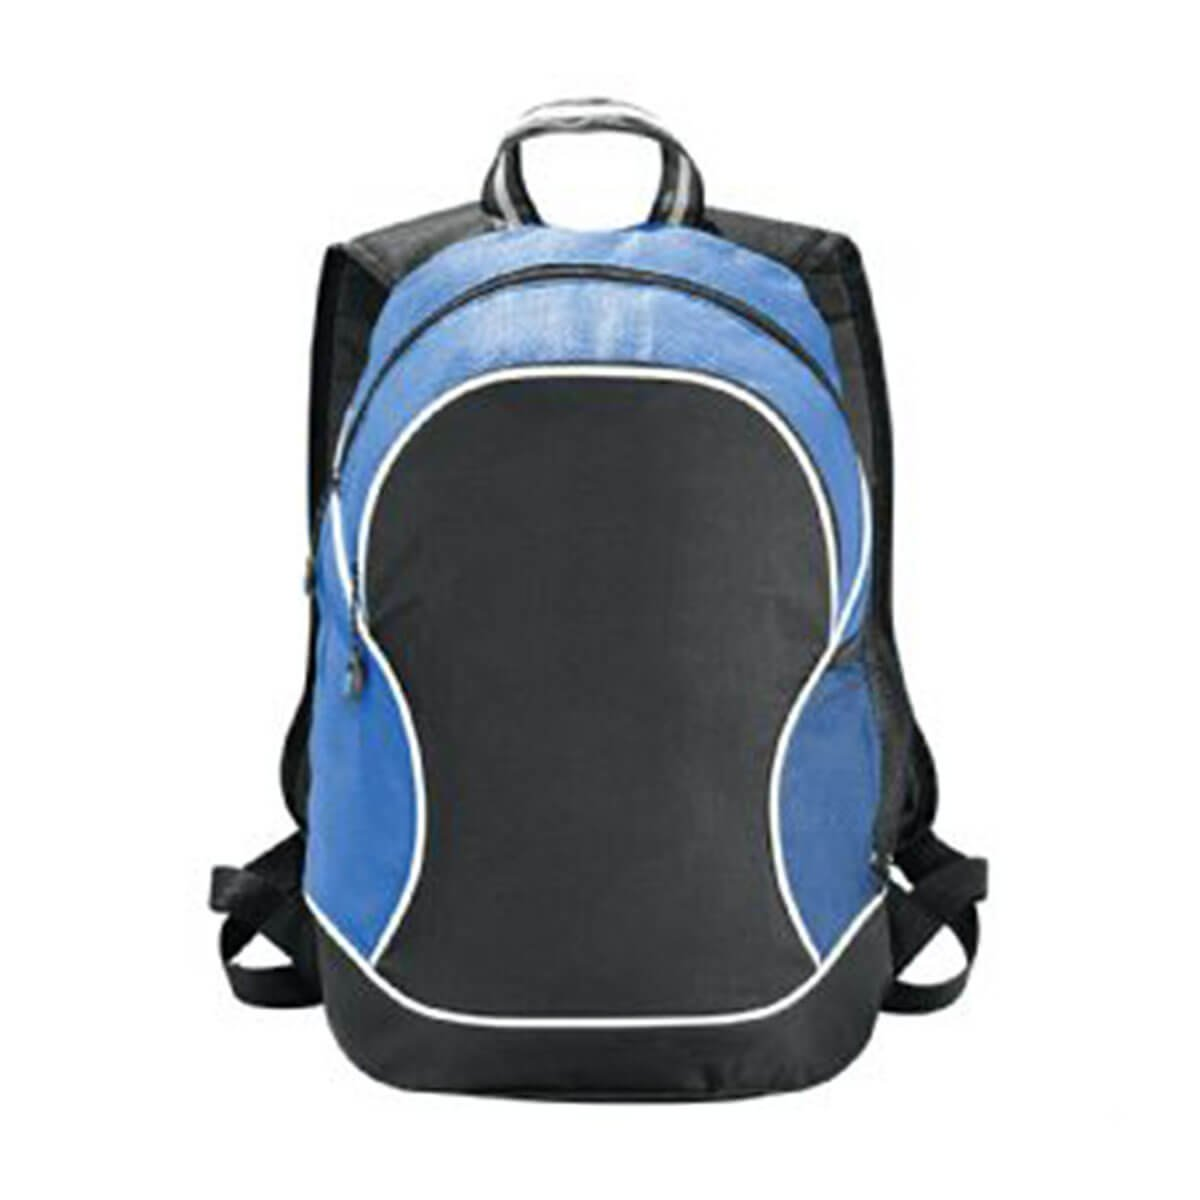 Boomerang Backpack-Blue.